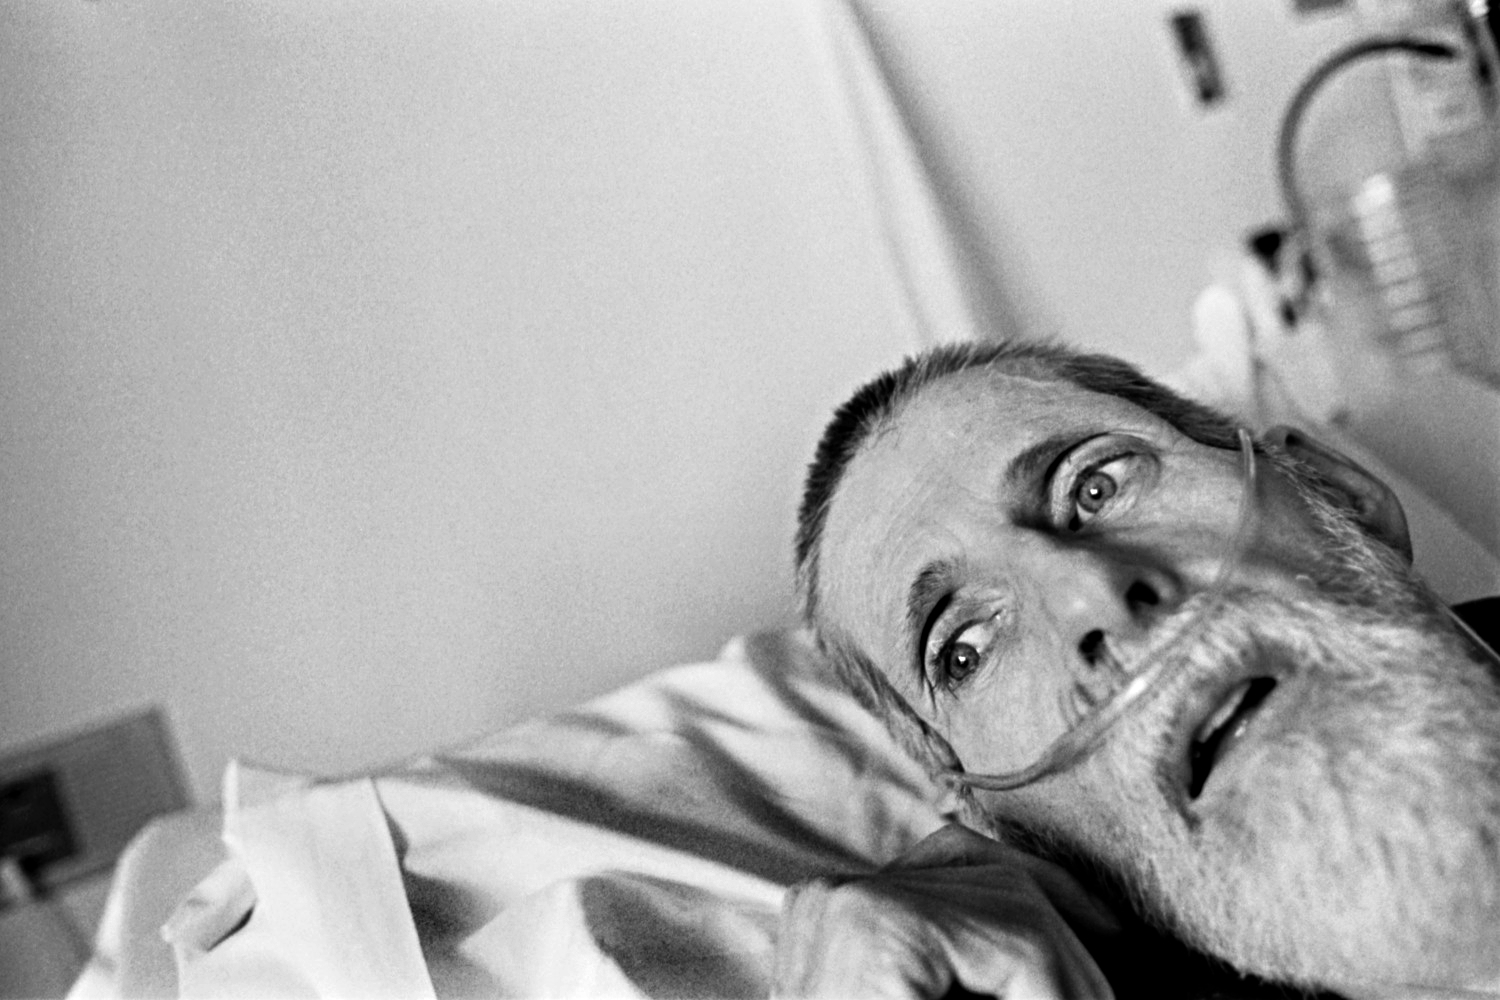 In his final days BLAYNE KINART lies in his bed breathing with the aid of a respirator in a hospital's palliative care unit in Sarnia, Ontario. 58-year-old Kinart a former chemical worker died from Mesothelioma, a cancer associated with asbestos exposure.Residents of the area have nicknamed Sarnia 'Chemical Valley,' due to the large number of chemical plants operating in the area. Blayne passed away on July 6, 2004 ©Louie Palu/ZUMAPRESS.com